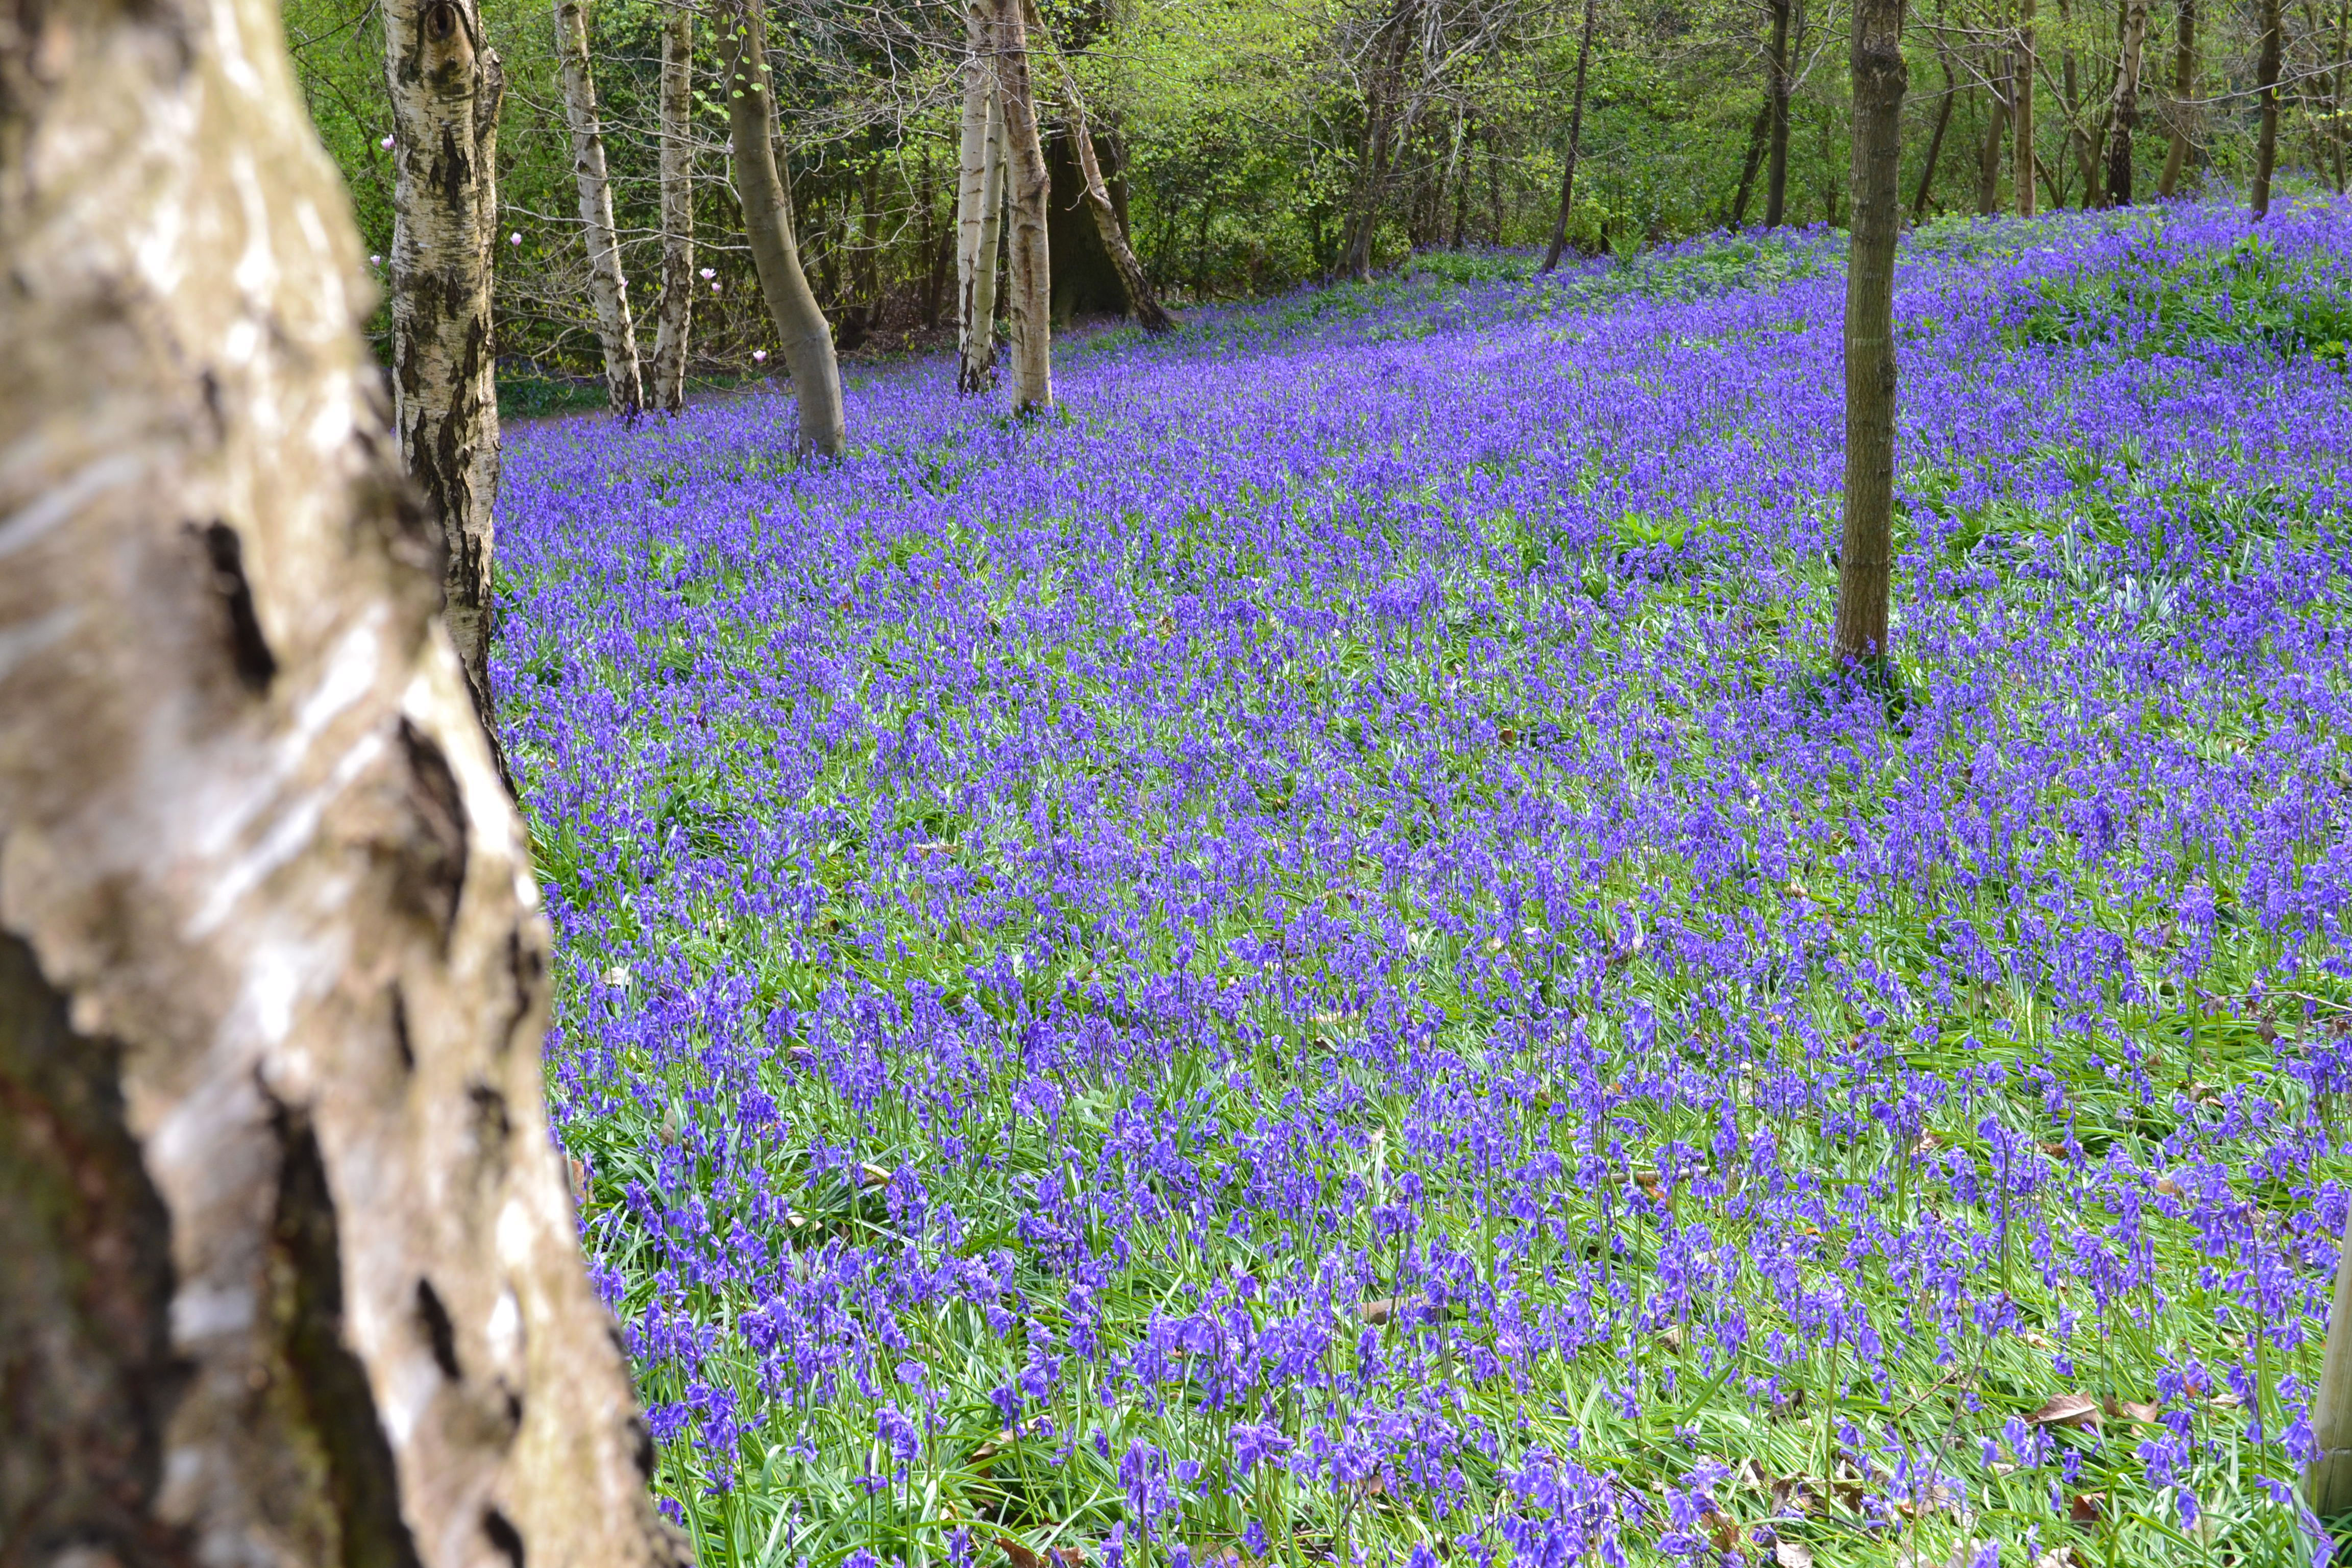 Unusual Emmetts Garden And The Ide Hill Walk Colours  Kent Walks Near London With Fetching Bluebells On The Ide Hill Walk April   With Appealing Garden Hedge Cutting Also Gardening Can In Addition Nudes In The Garden And Goose Home And Garden As Well As Garden Shade Fabric Additionally San Jose Airport Garden From Localkentwalkscom With   Fetching Emmetts Garden And The Ide Hill Walk Colours  Kent Walks Near London With Appealing Bluebells On The Ide Hill Walk April   And Unusual Garden Hedge Cutting Also Gardening Can In Addition Nudes In The Garden From Localkentwalkscom